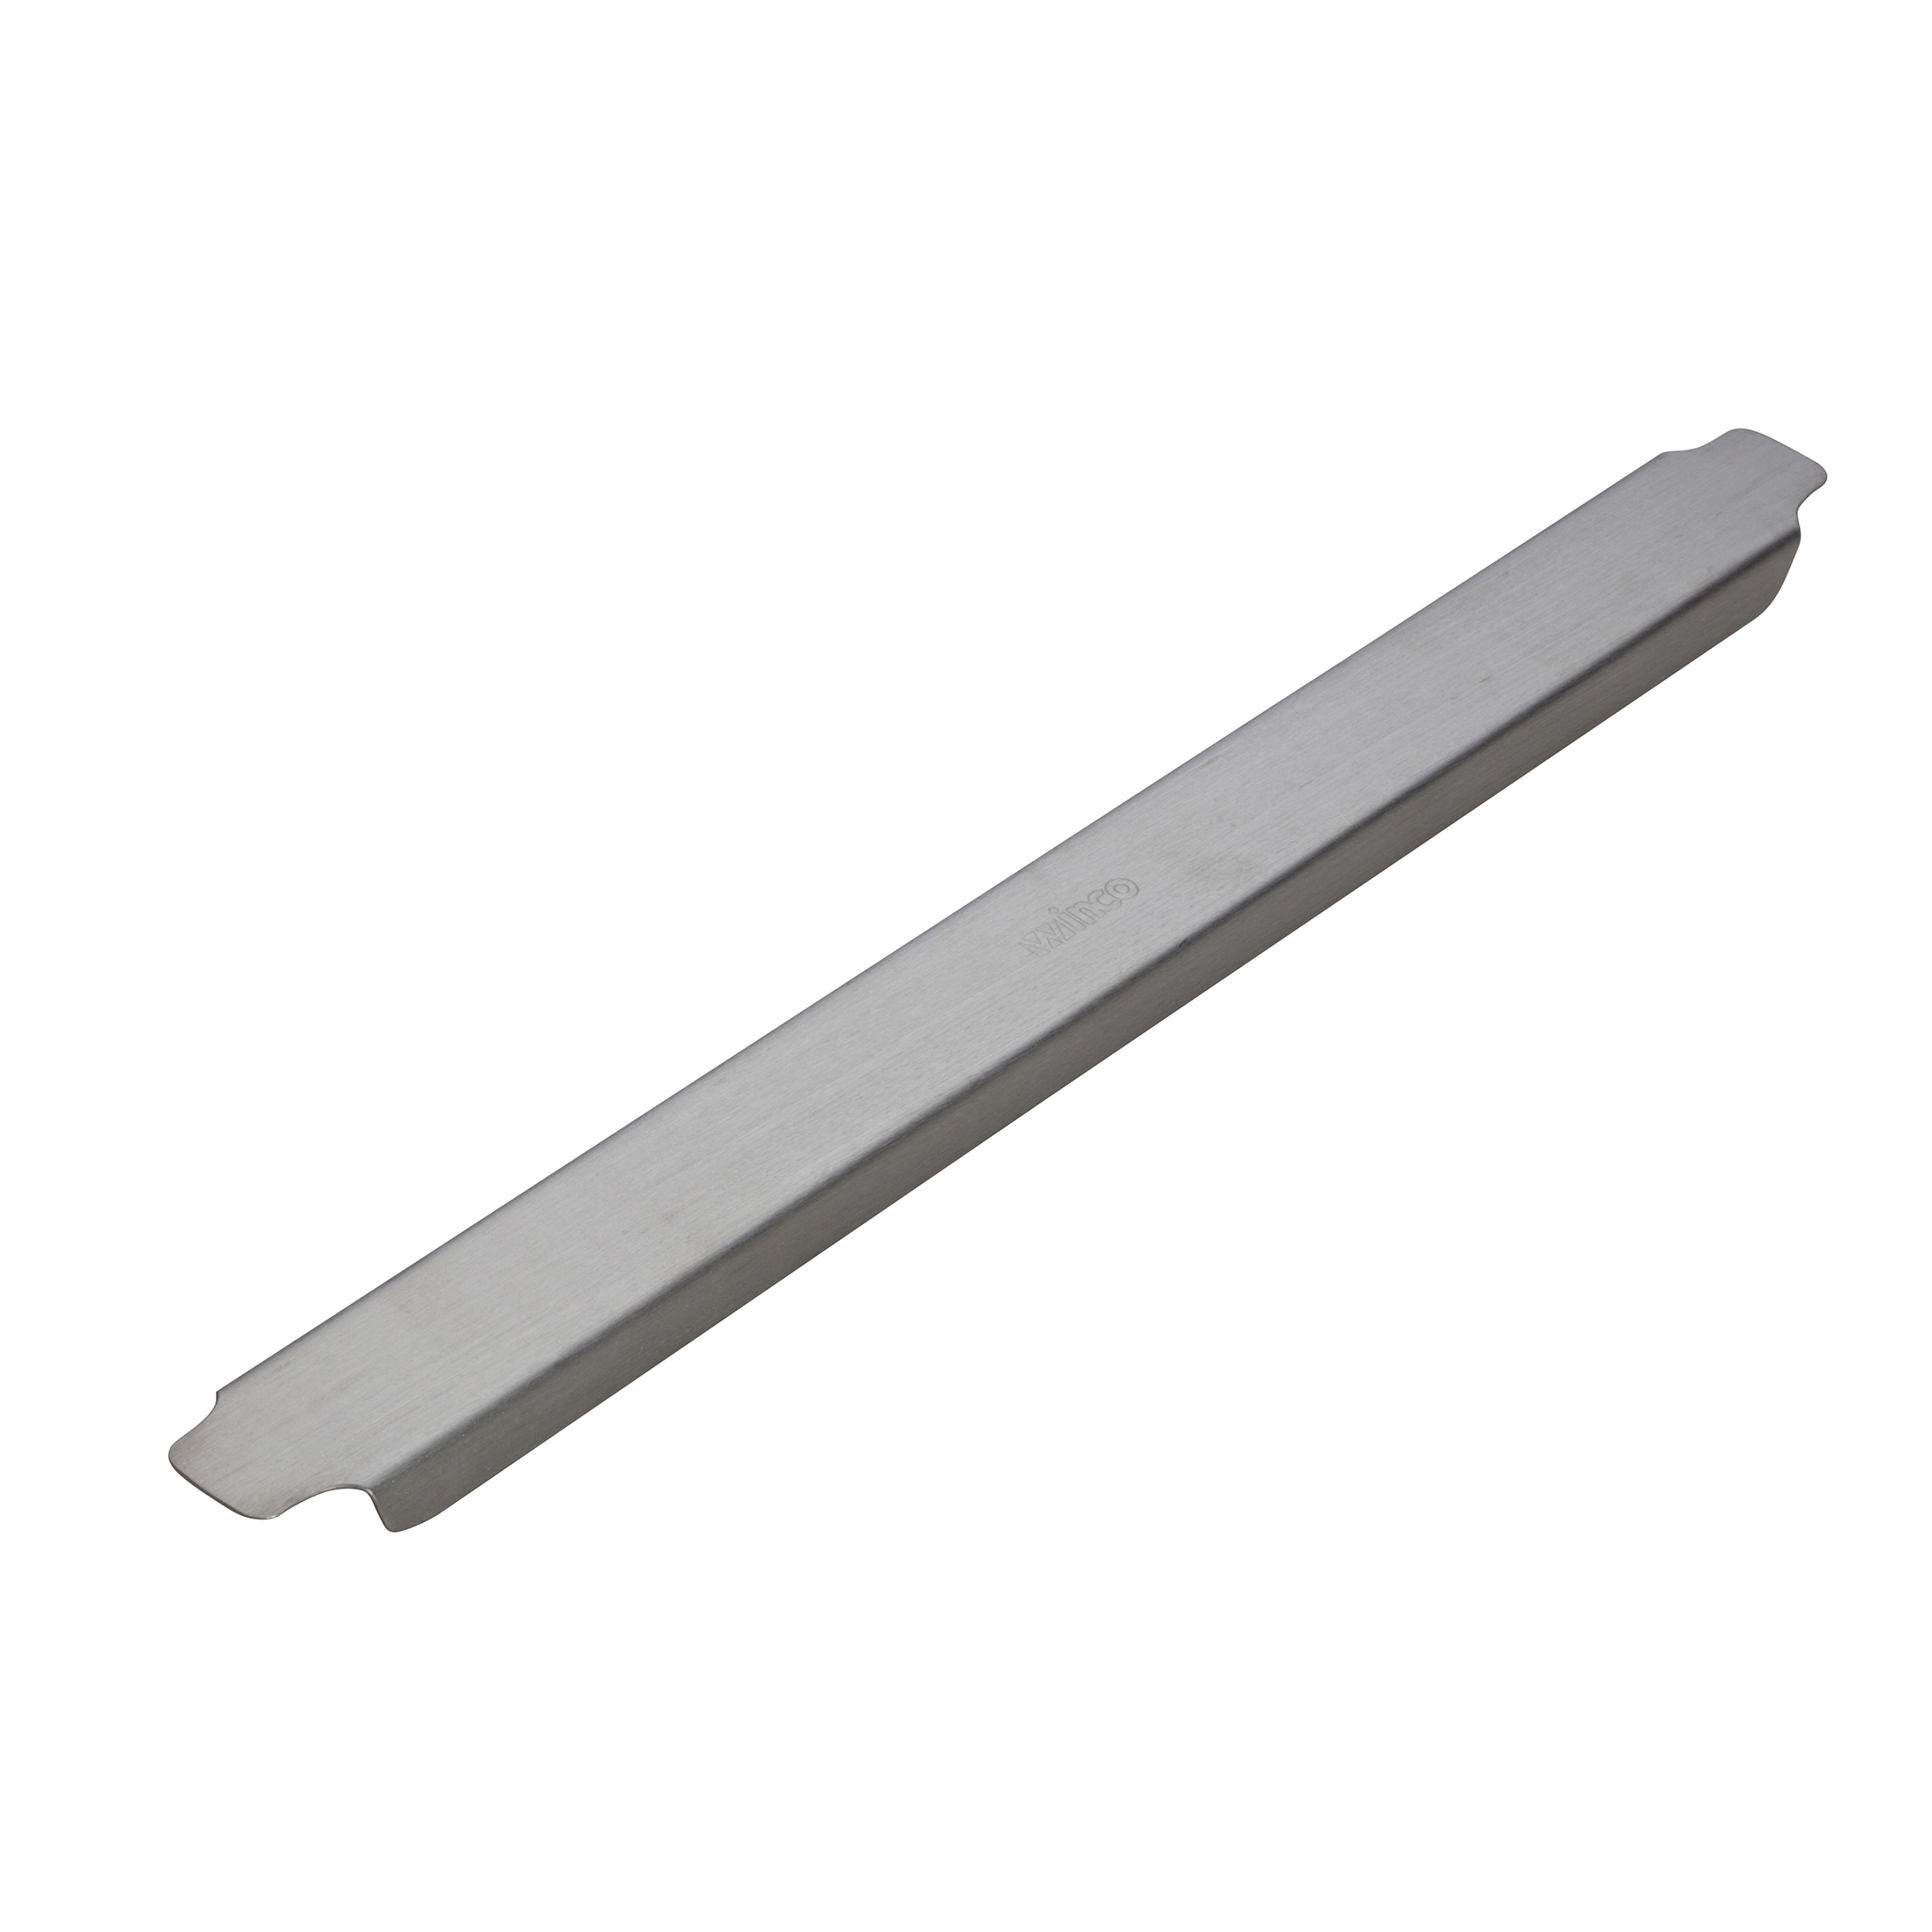 Winco ADB-12 adapter bar